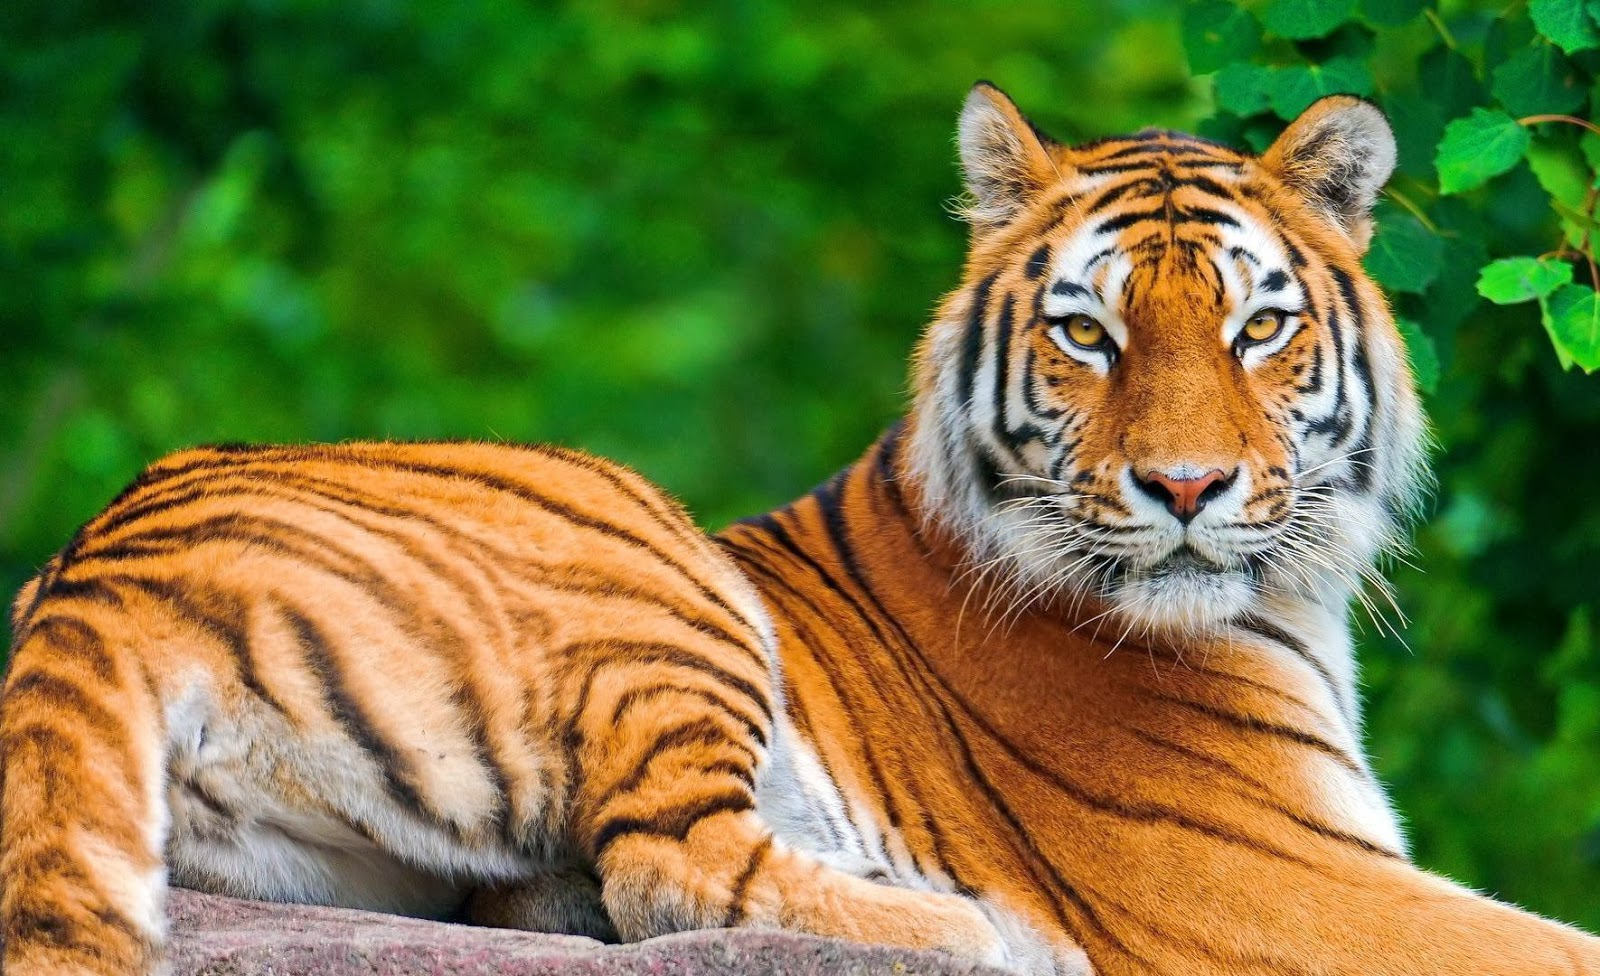 Hd Tiger Pictures Tiger Wallpapers: All 4u HD Wallpaper Free Download : Tiger Wallpapers Free